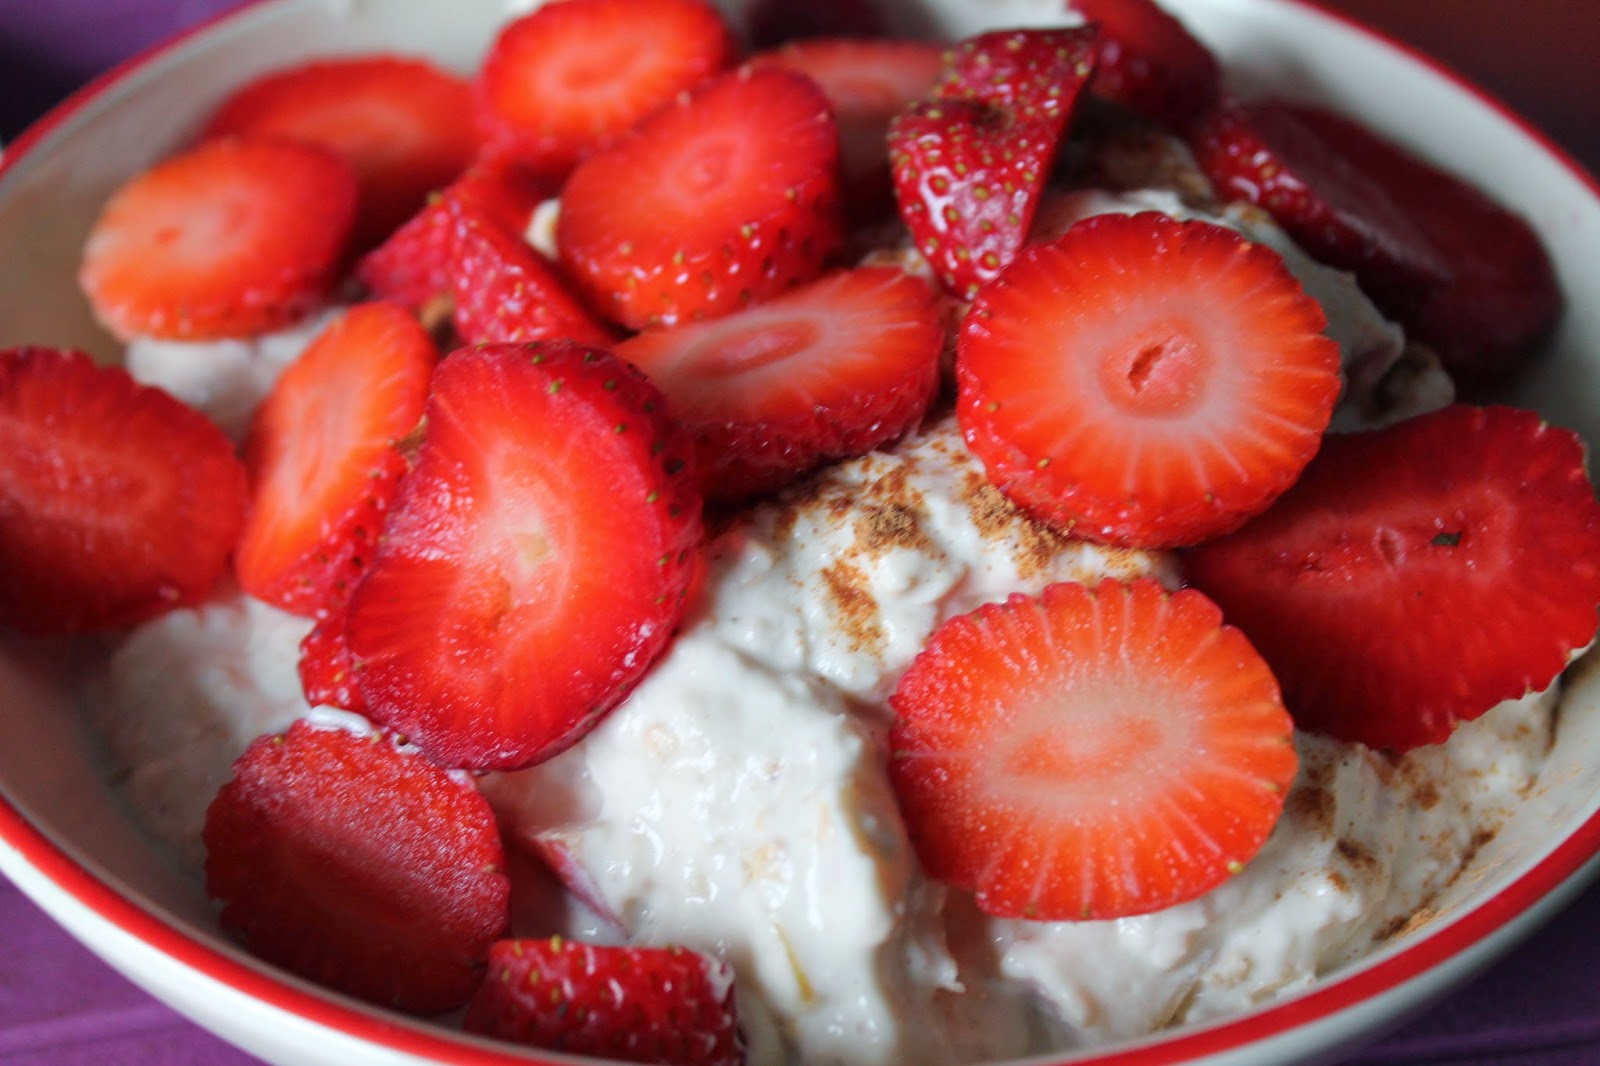 Porridge Protein Breakfast Clean Eating Inspo Food Healthy Sports Fitnessblogger Sportsblogger Strawberries Oatmeal